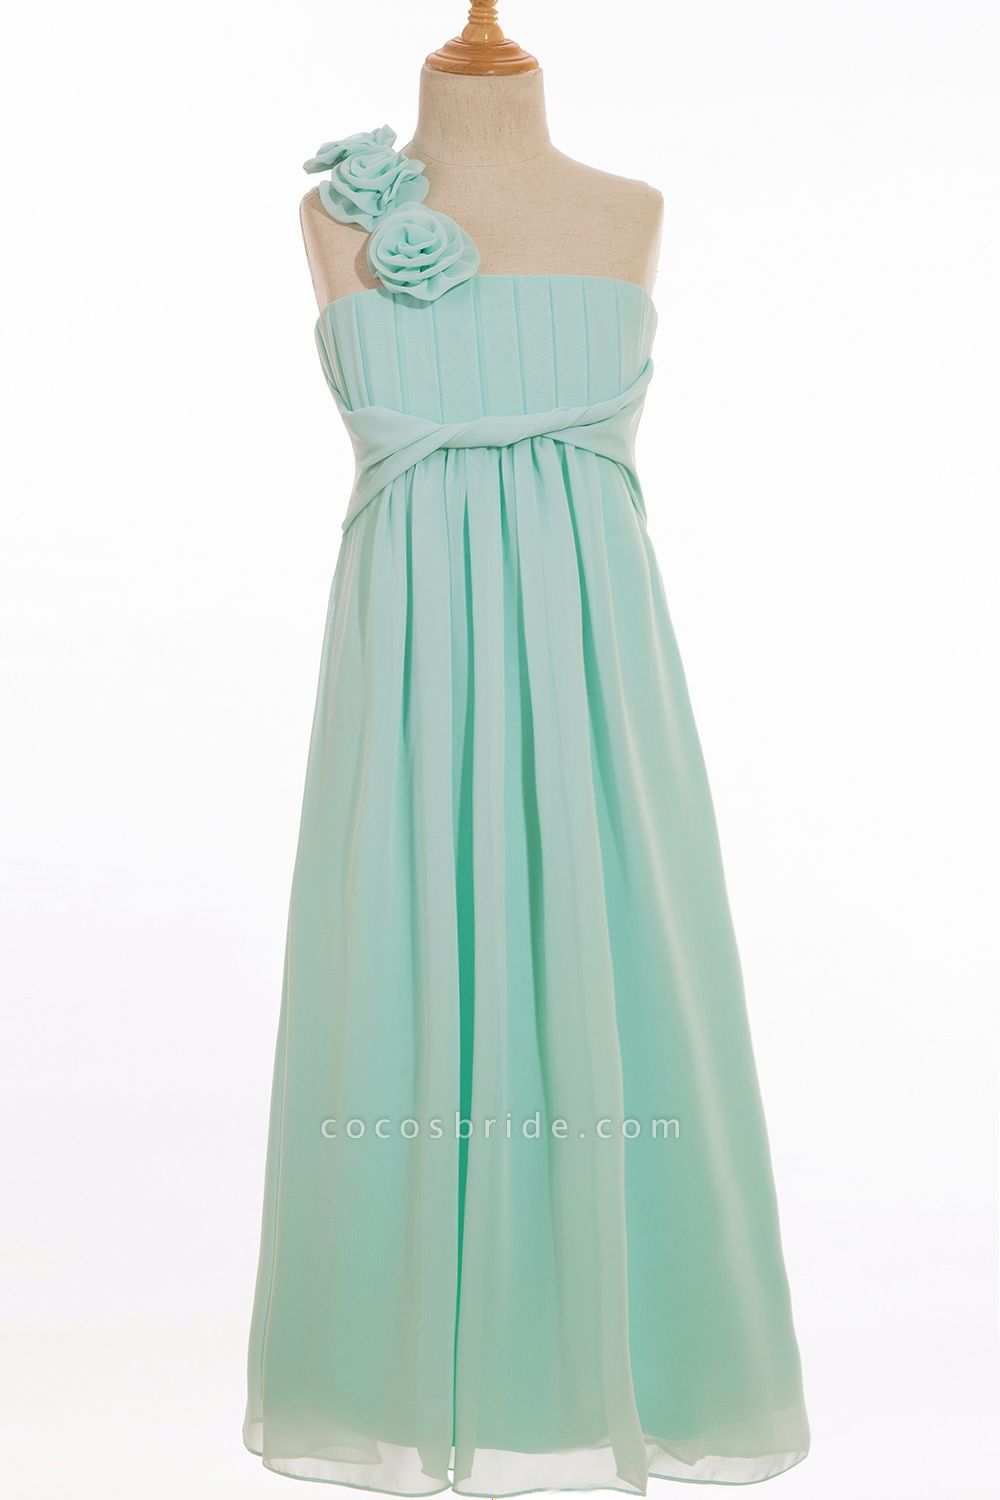 One Shoulder A-line Floor Length Bridesmaid Dress